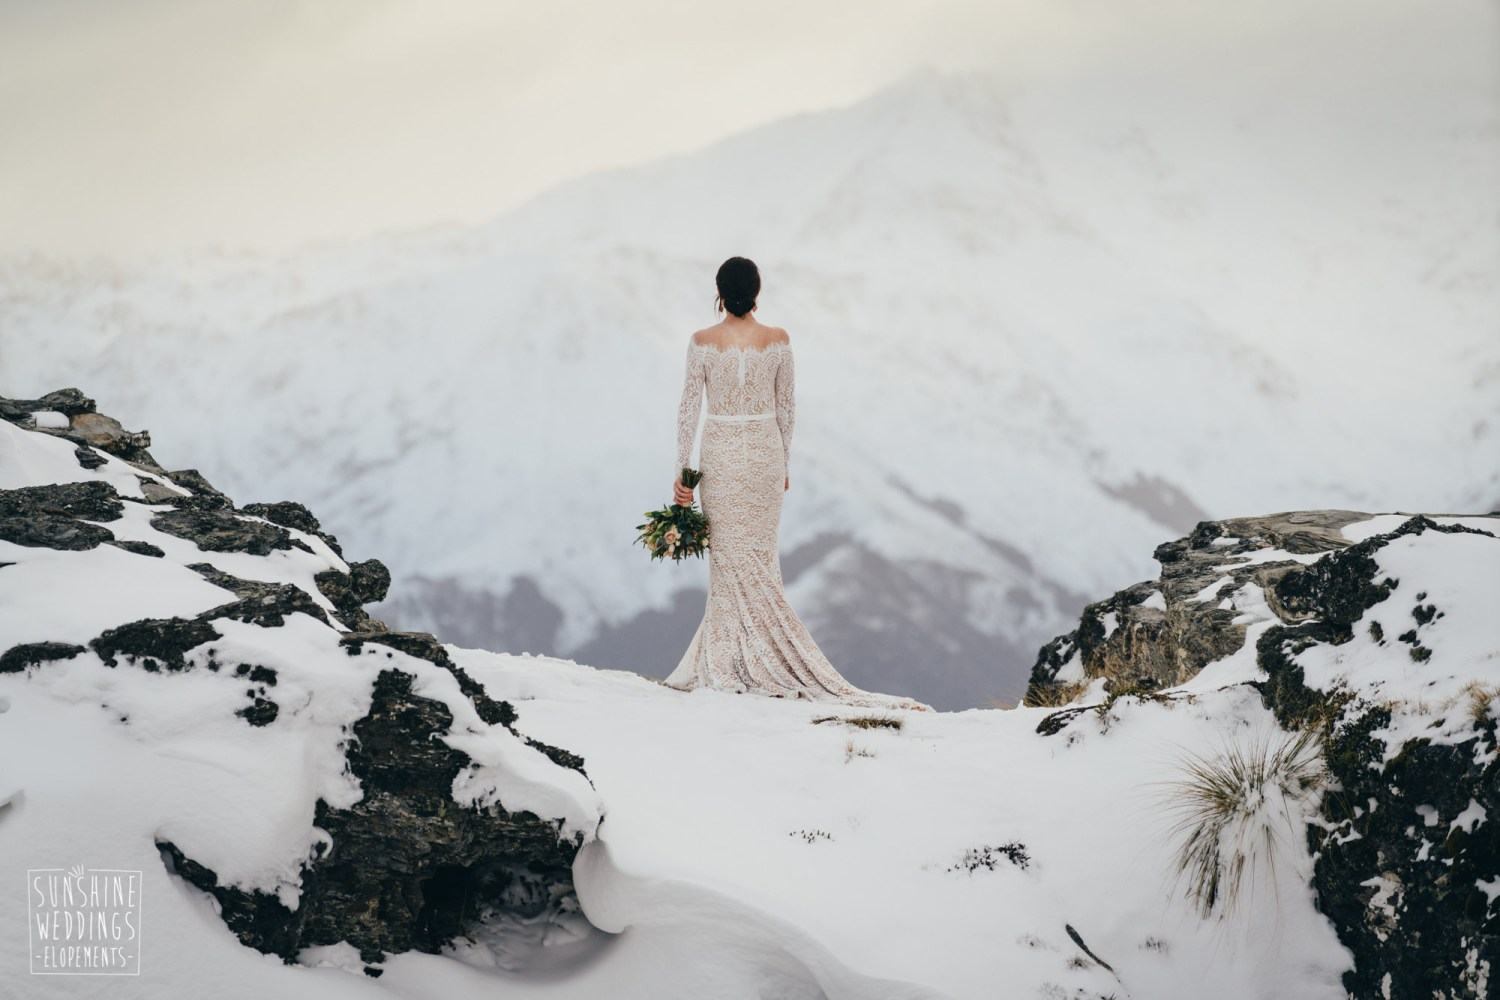 Cecil Peak wedding packages